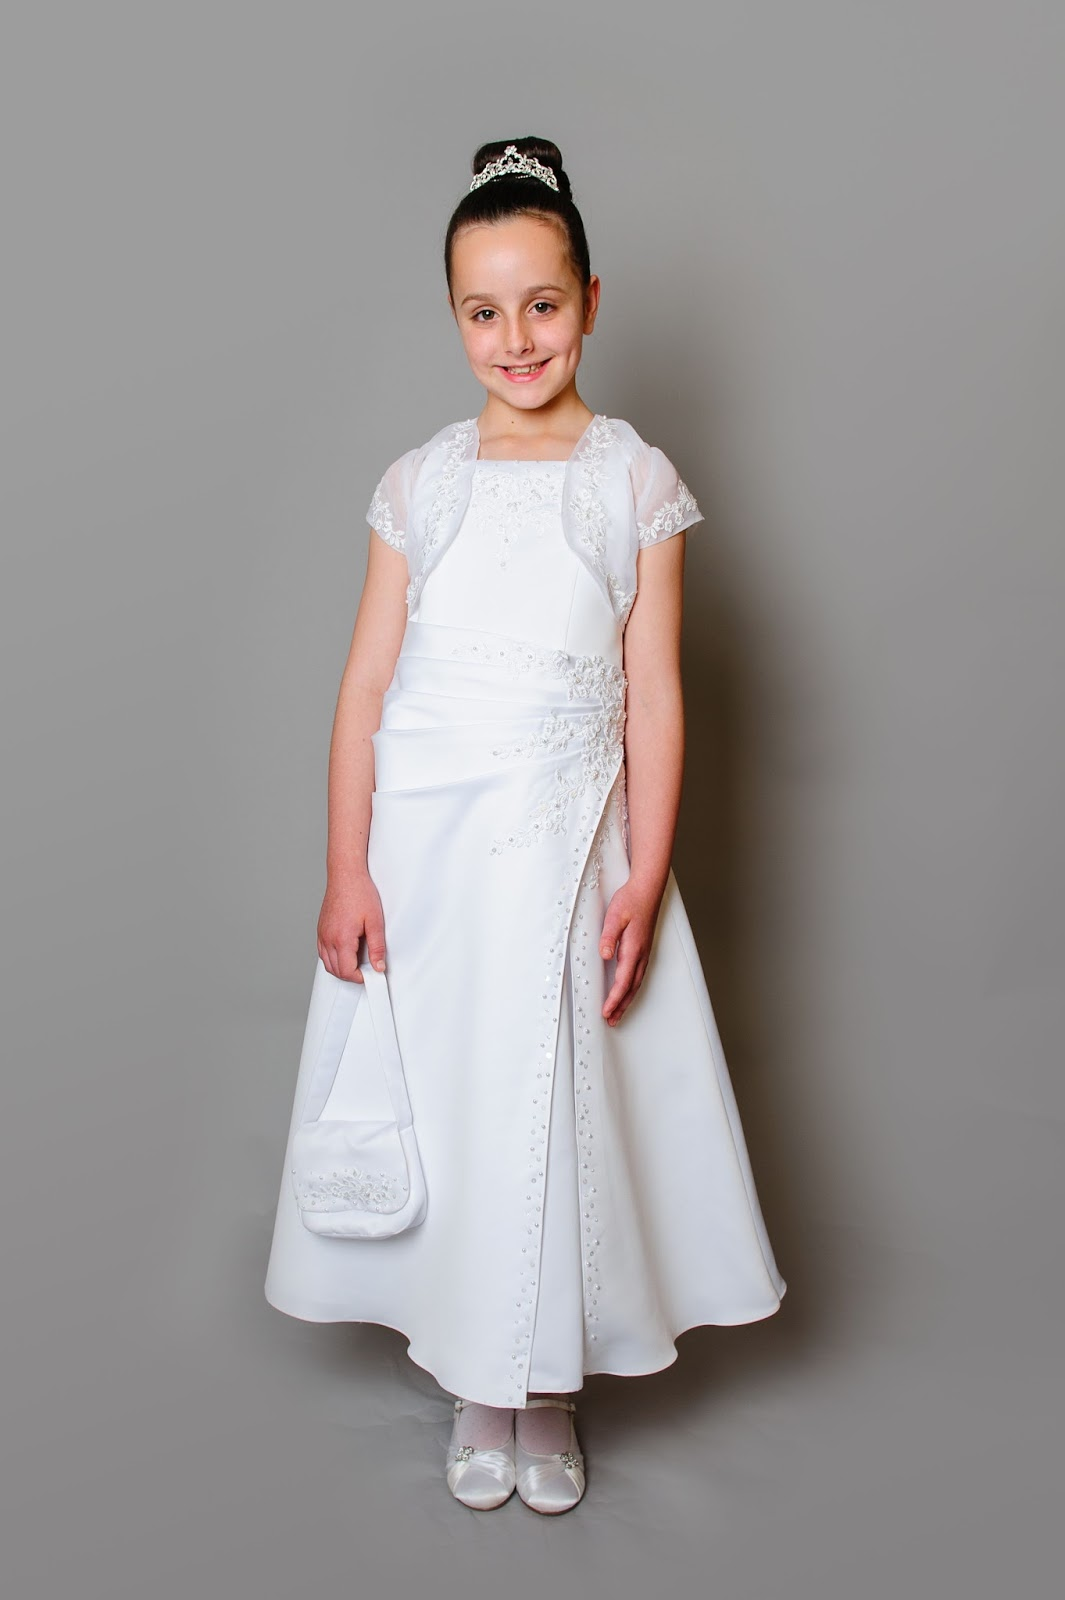 Communion Dresses for Girls: Shop Early for a 2016 Communion ...